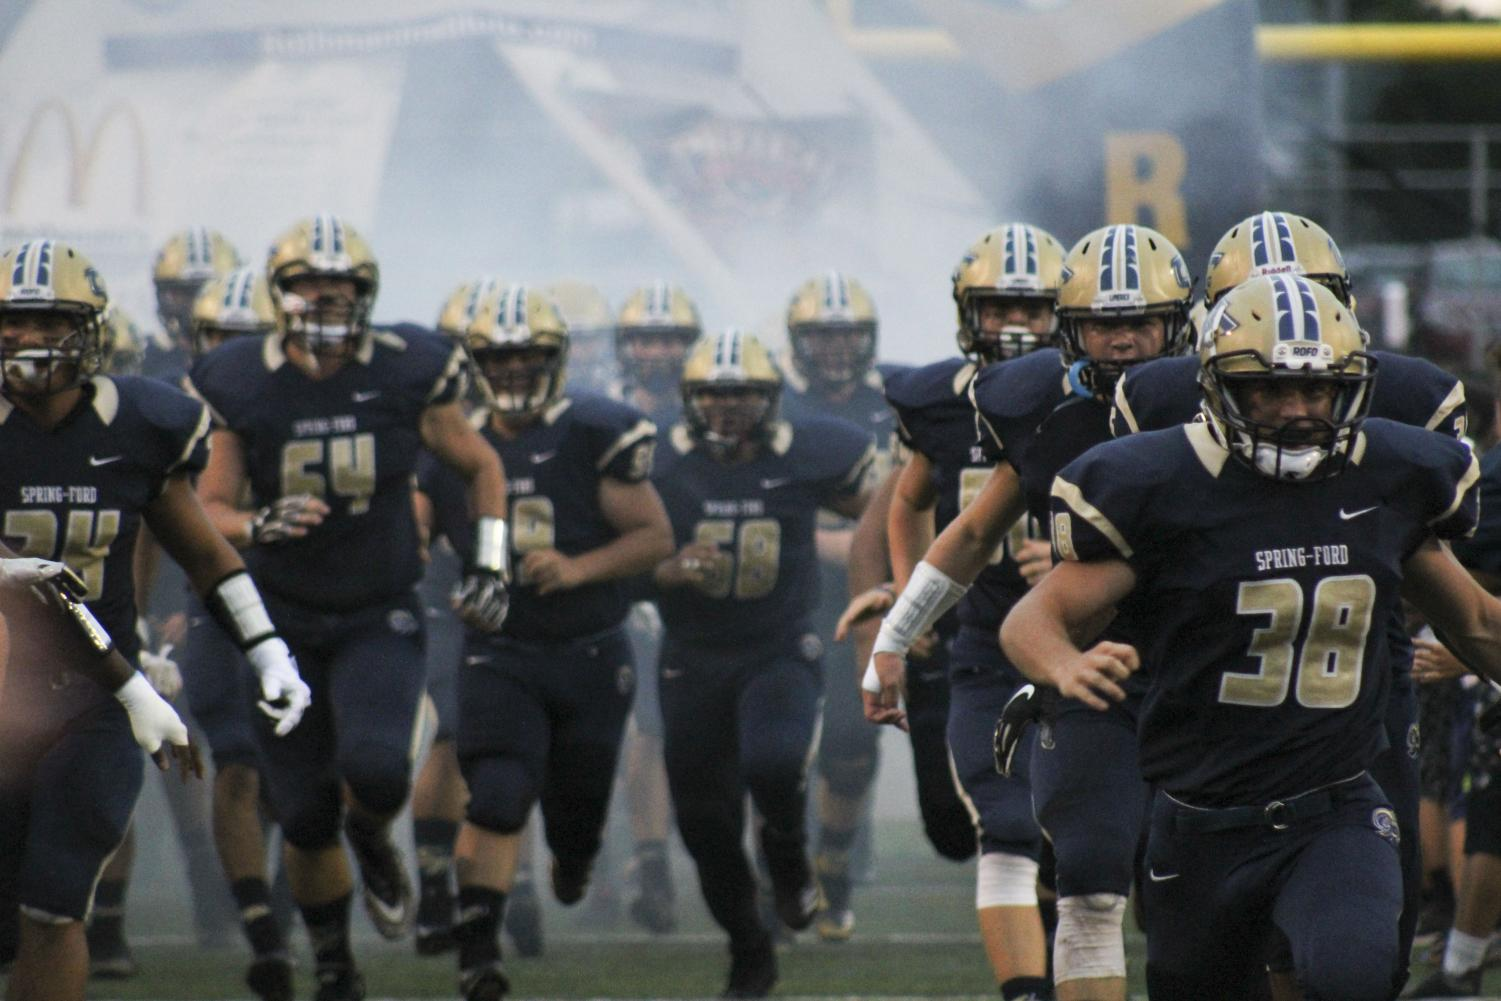 Spring-Ford football players take the field before a game earlier this season. The Rams finished the season with a 8-2 regular season.